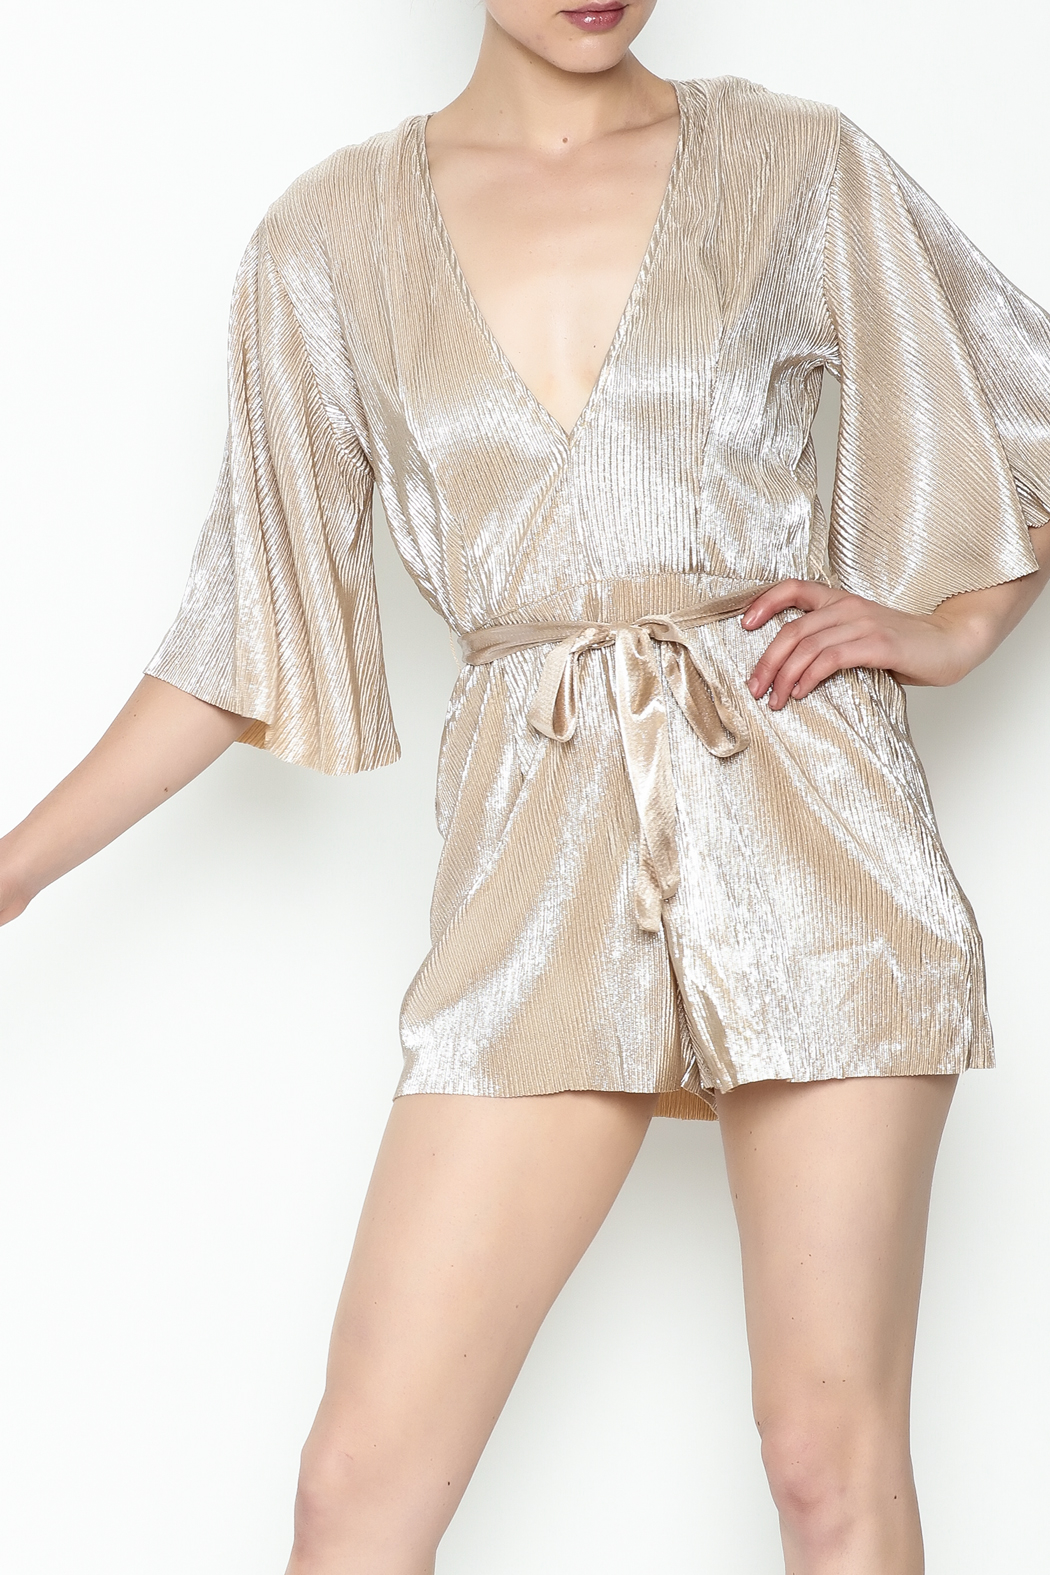 Do & Be Metallic Short Sleeved Romper - Main Image